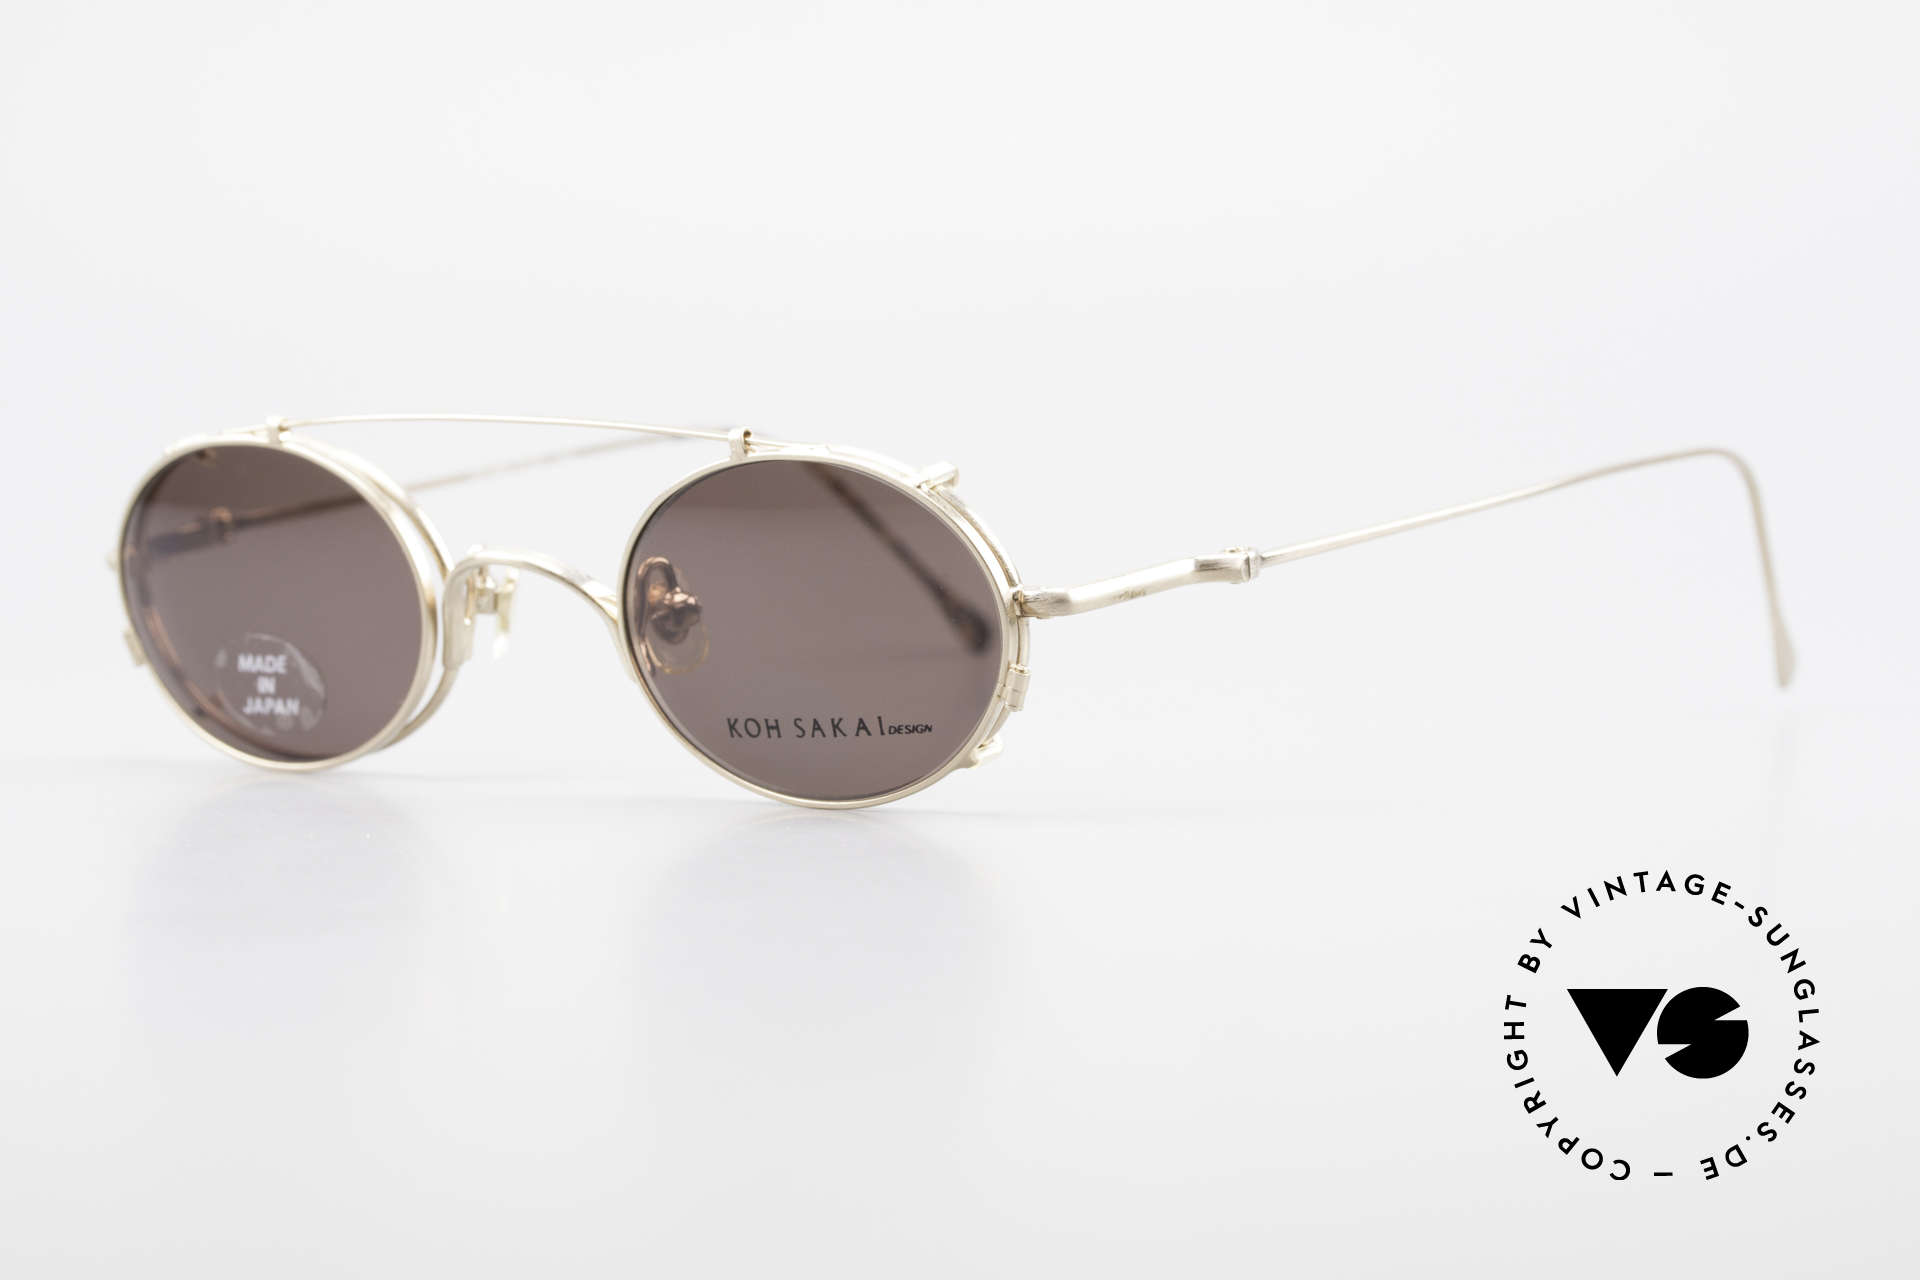 Koh Sakai KS9541 90s Oval Frame Made in Japan, designed in Los Angeles and produced in Sabae (Japan), Made for Men and Women